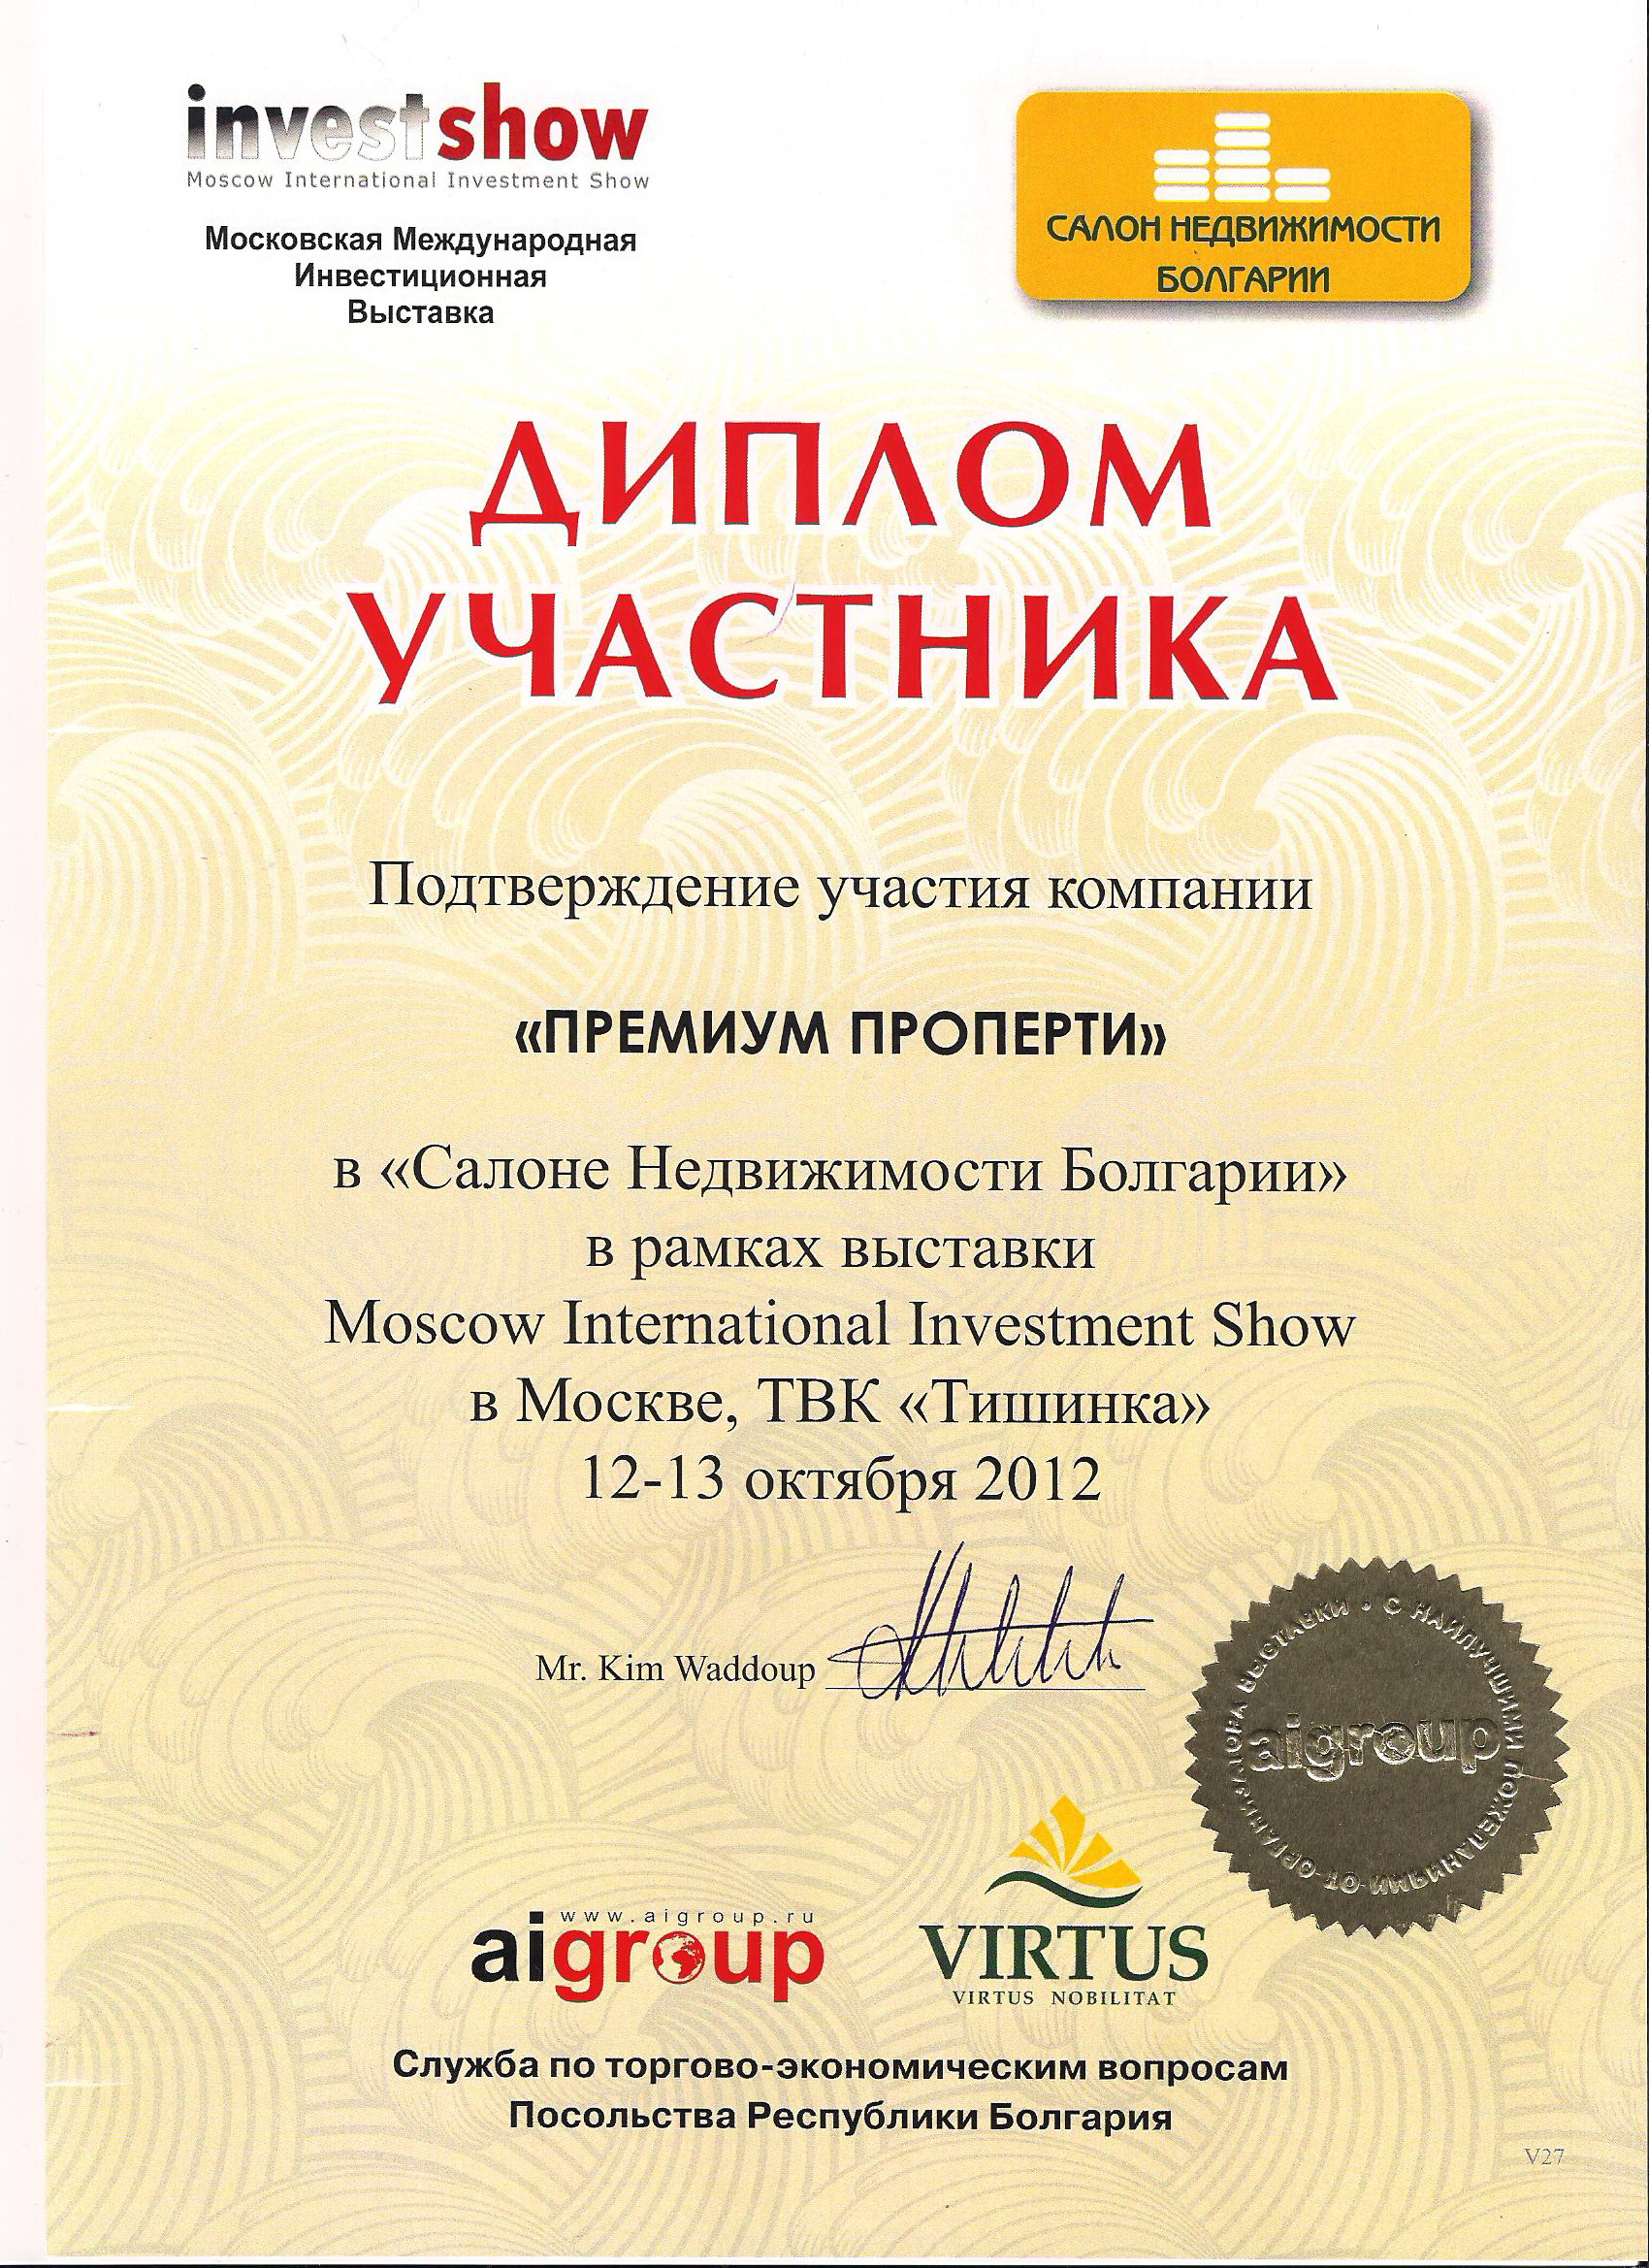 Moscow International Investment Show 2012 (в Тишинке)